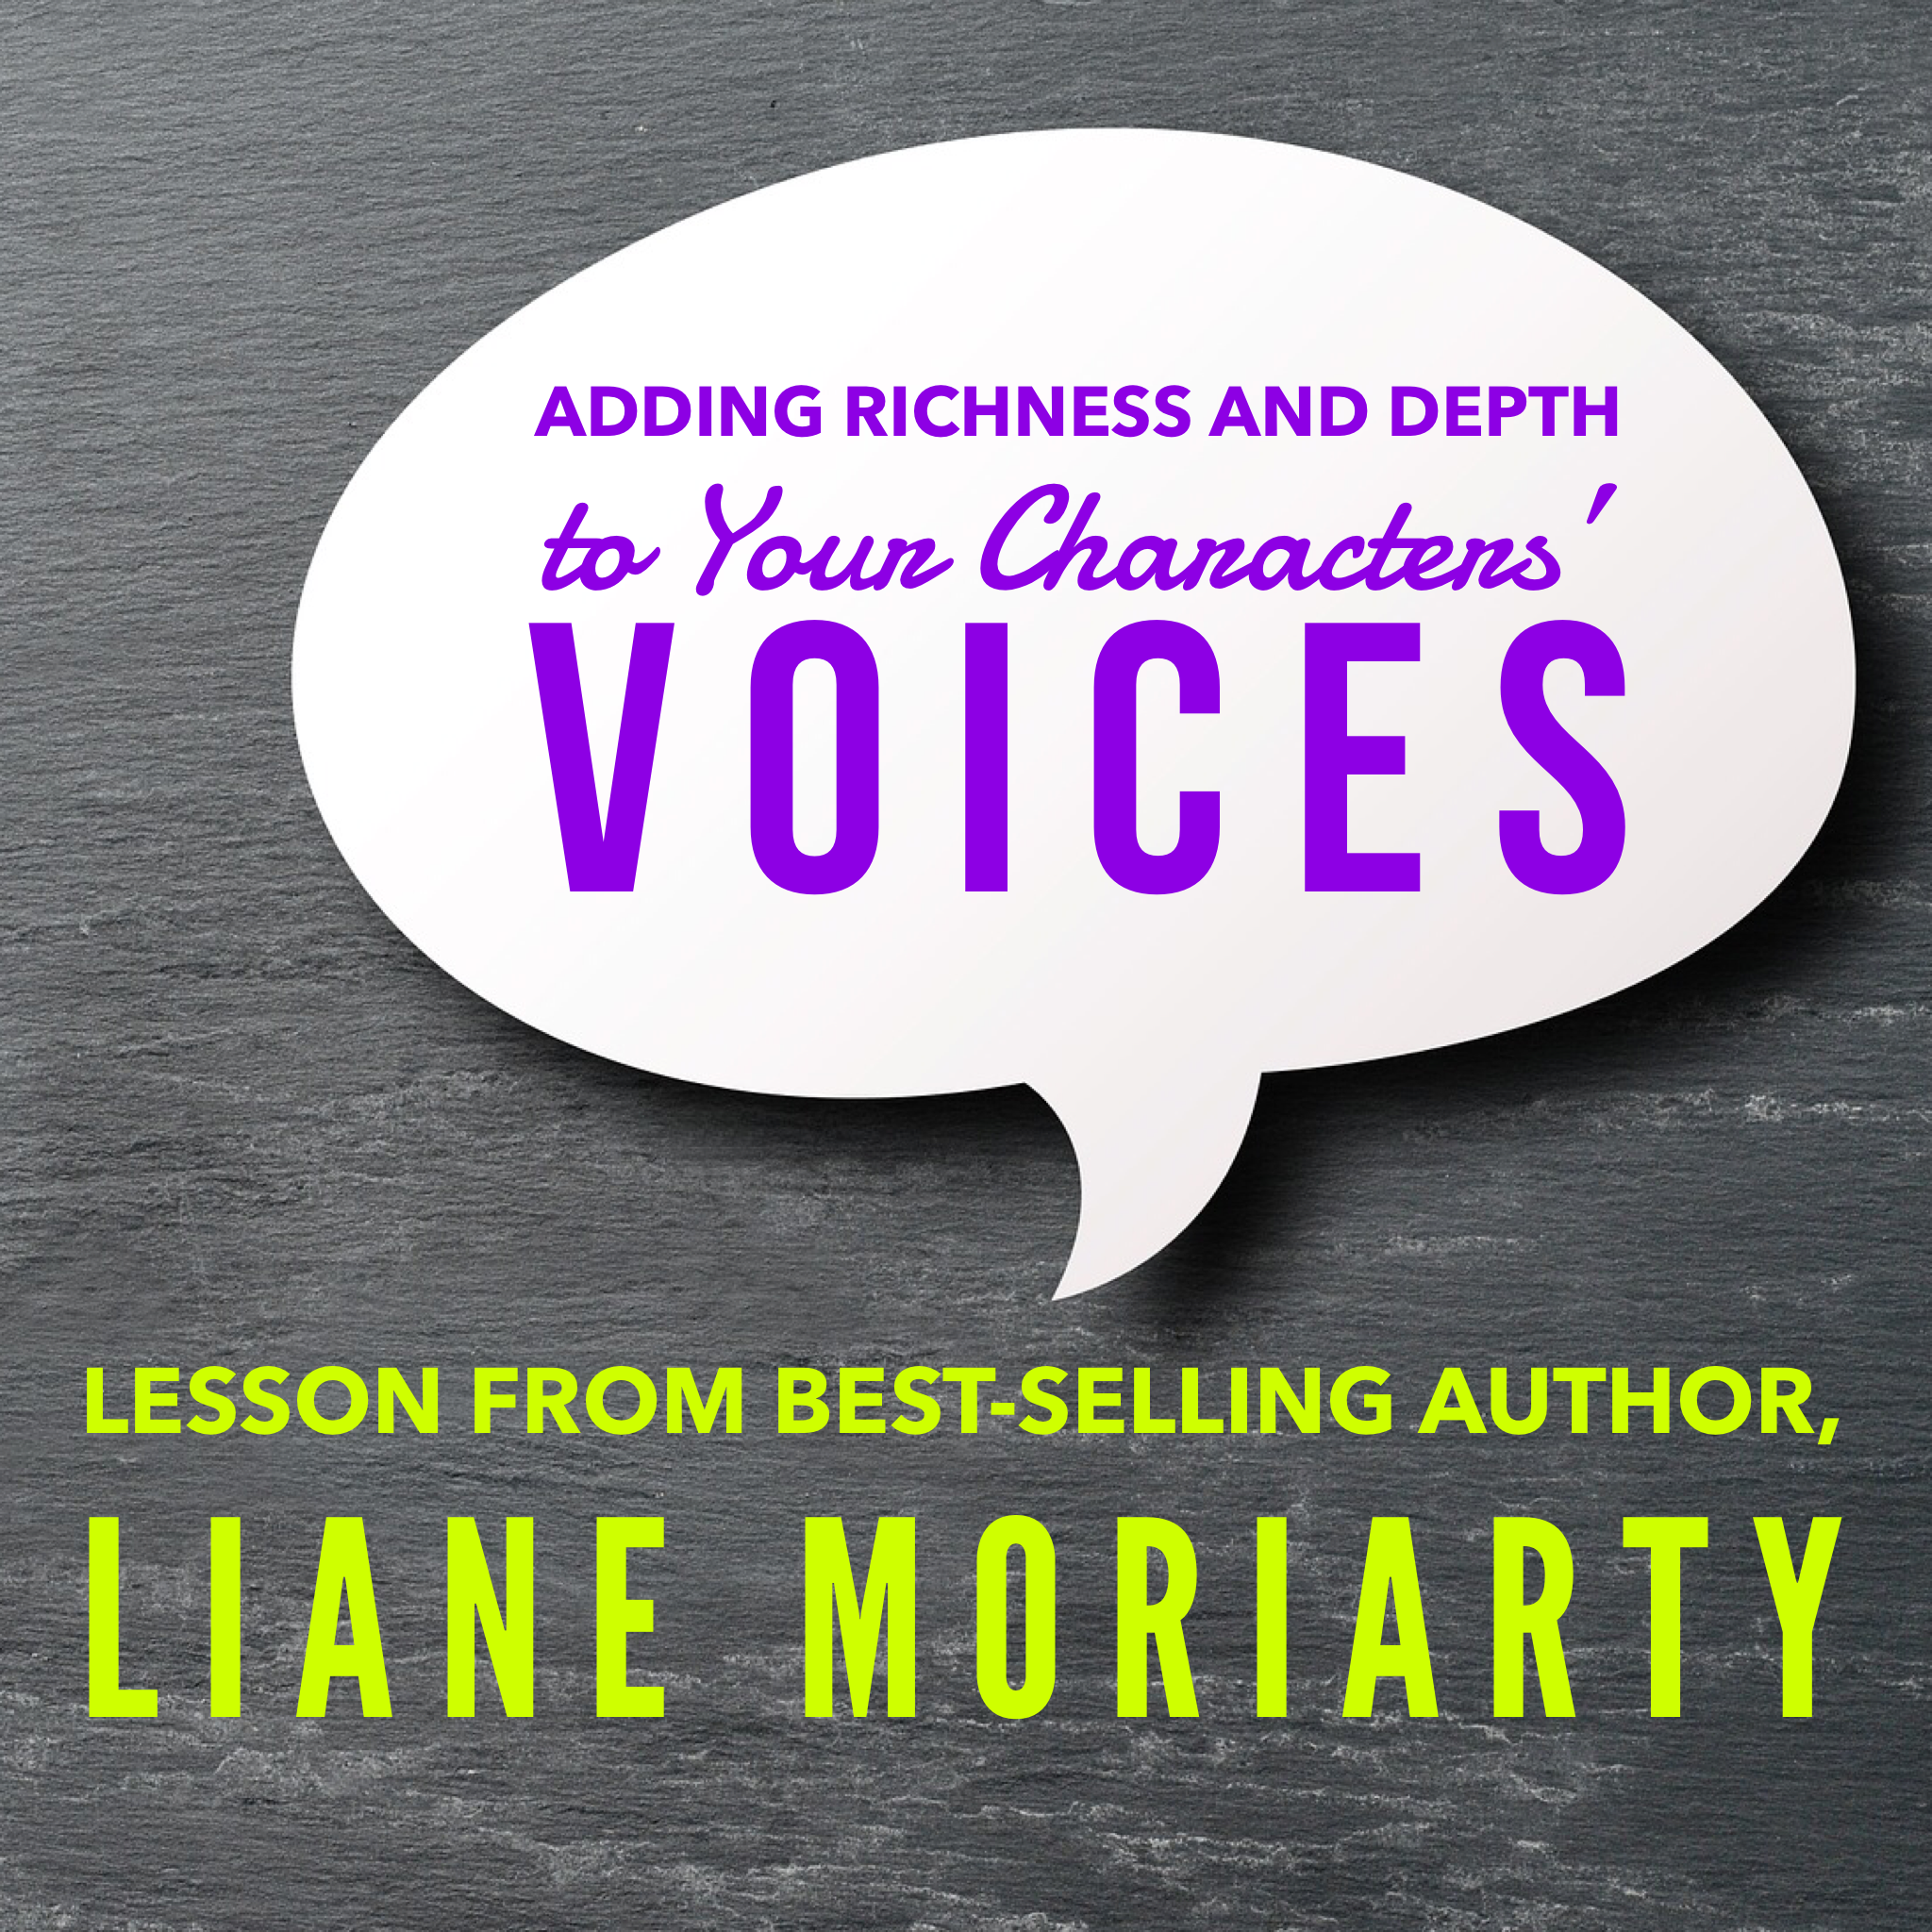 Adding Richness and Depth to Your Characters' Voices: Lesson from Liane Moriarty